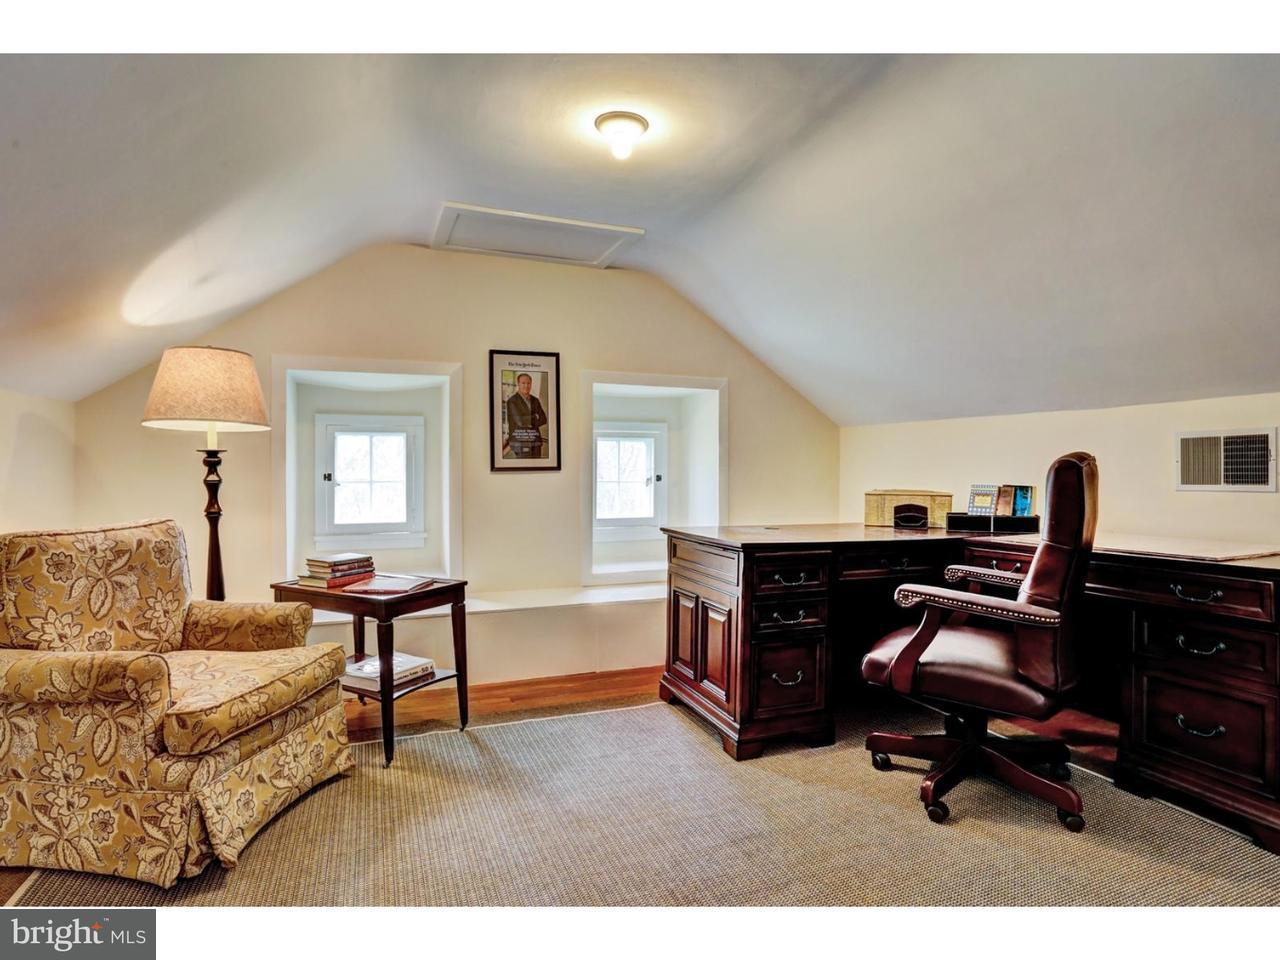 Additional photo for property listing at 697 GEORGETOWN FRANKLIN TPKE  Skillman, New Jersey 08558 United States